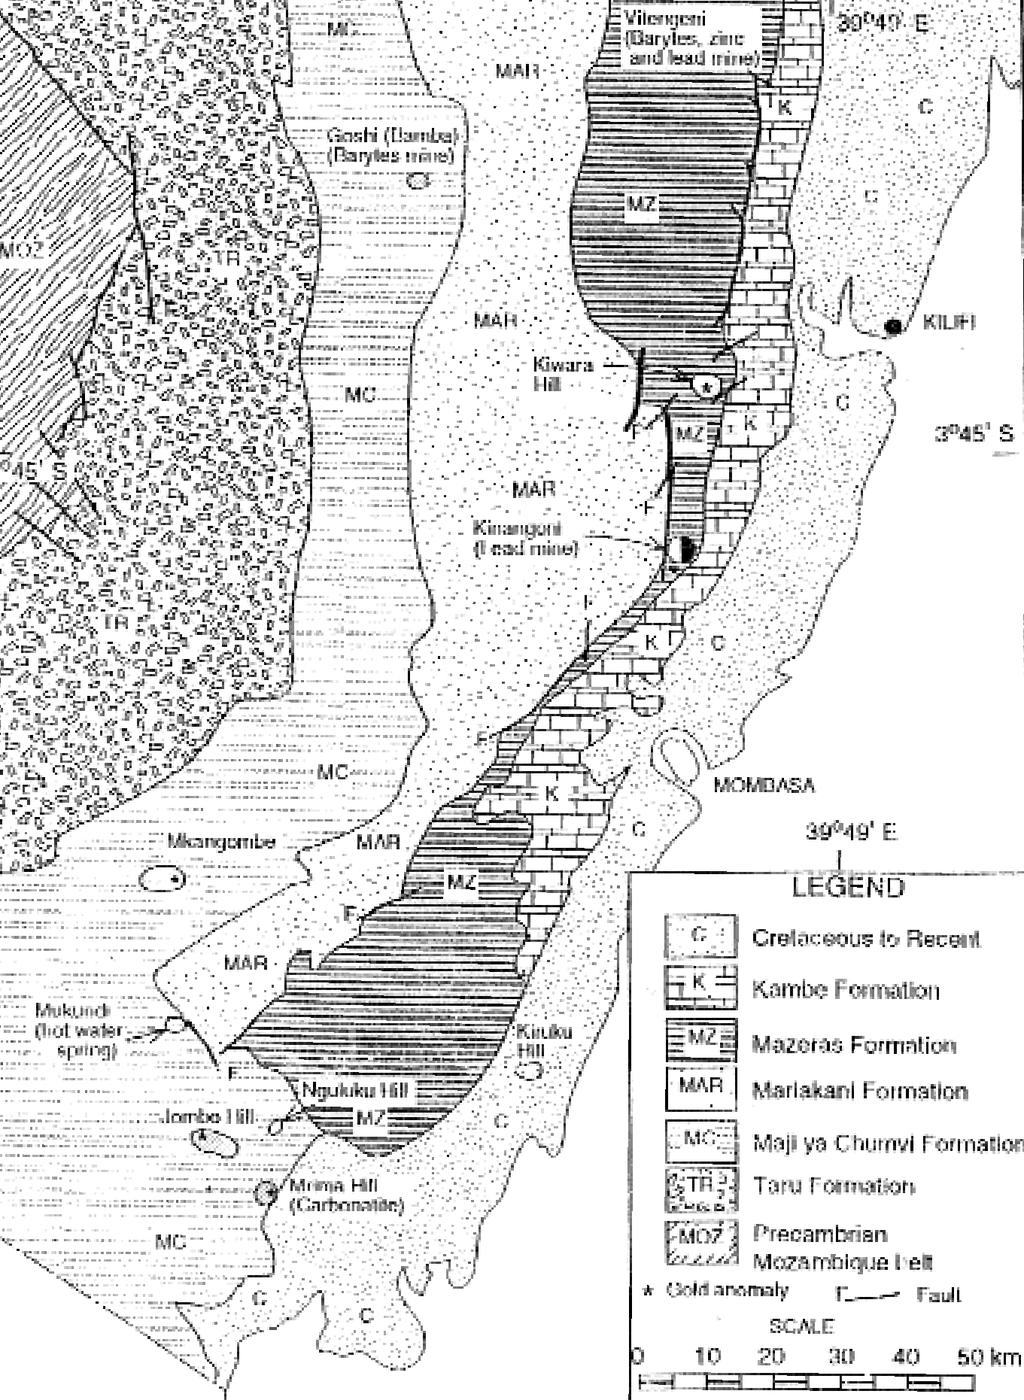 Map showing the general geology along the Kenyan coast, including major mineral